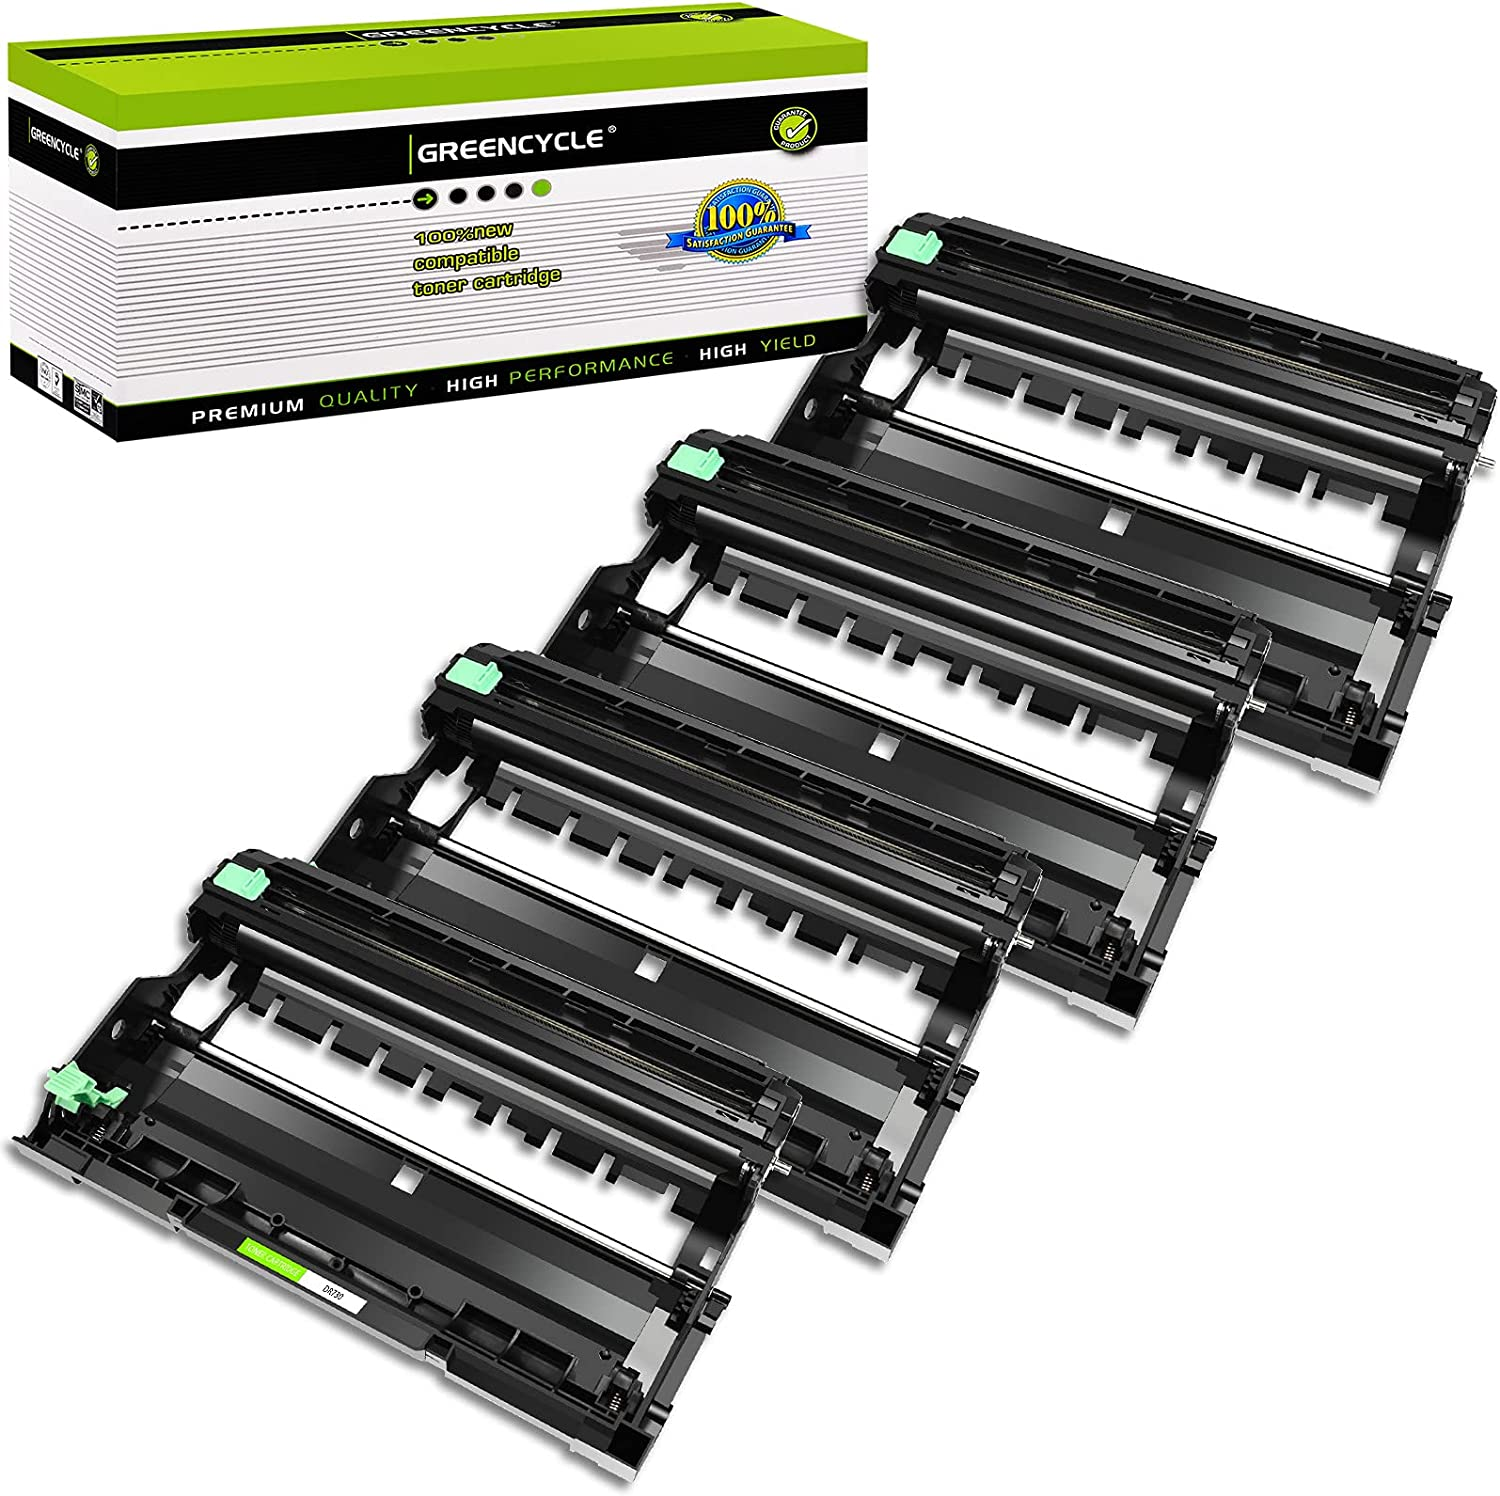 GREENCYCLE Compatible Drum Unit Replacement for Brother DR730 DR-730 Use for DCP-L2550DW HL-L2350DW HL-L2395DW HL-L2390DW HL-L2370DW MFC-L2710DW Printer (Black, 4-Pack)